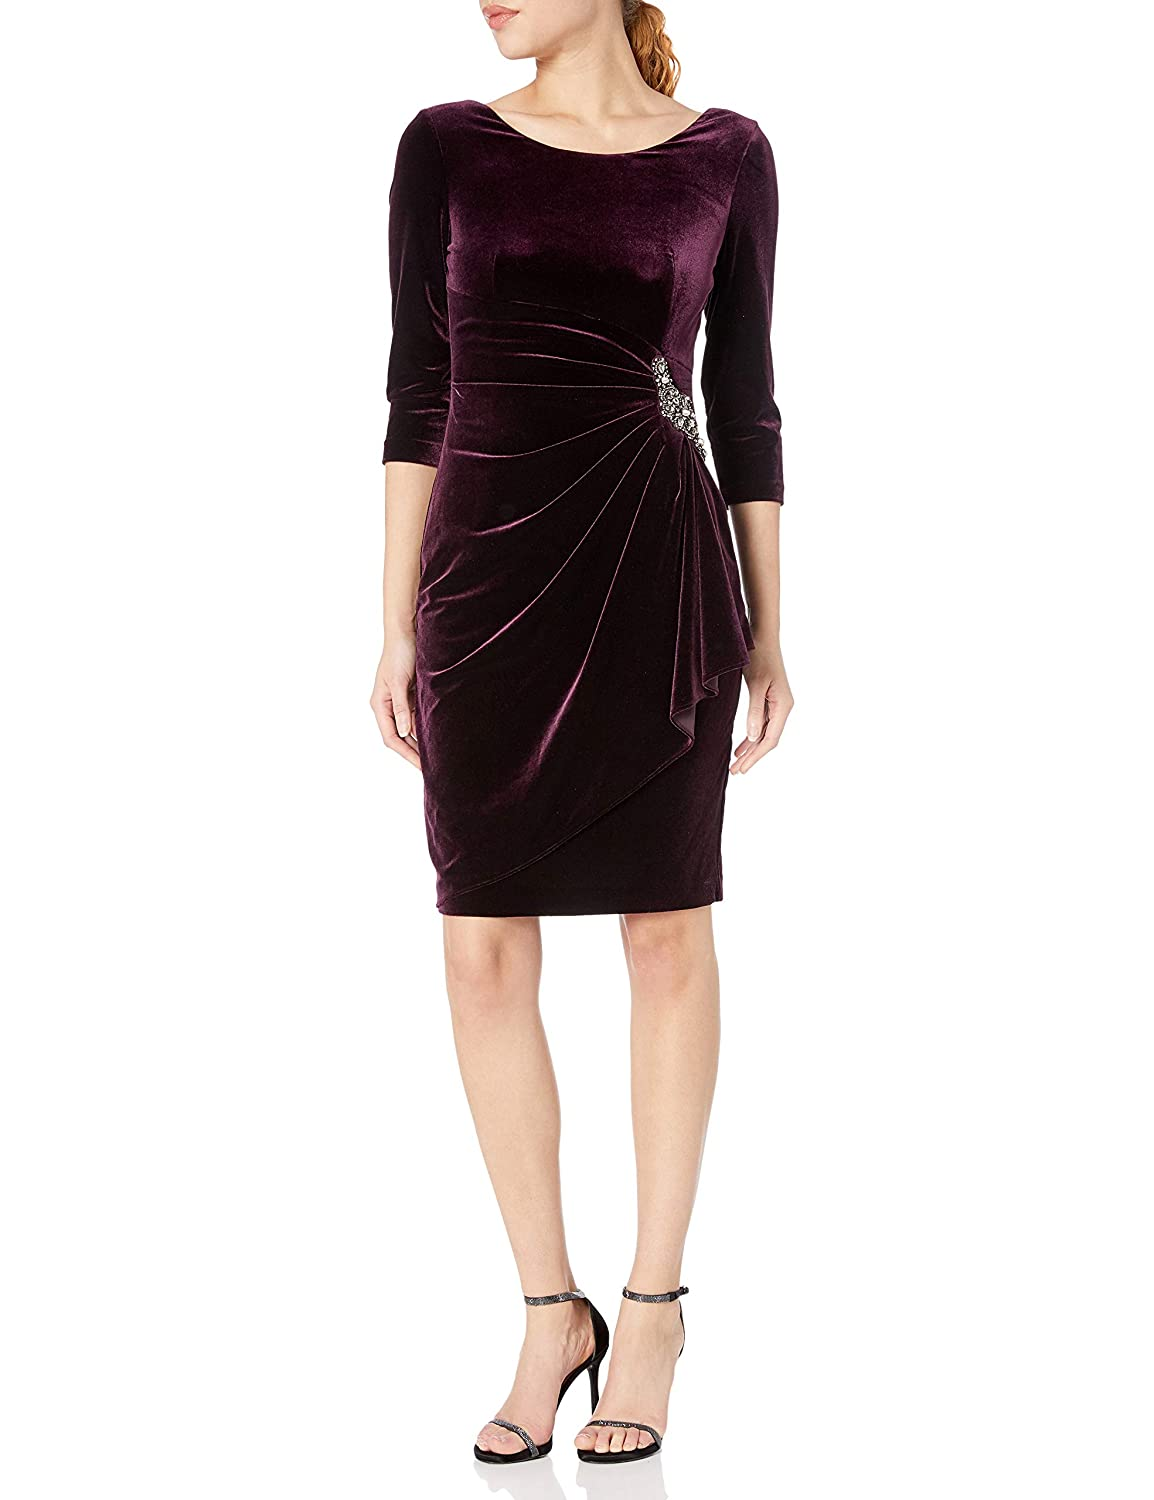 Alex Evenings Womens Velvet Dress with Sleeve and Hip Detail Regular and Petite